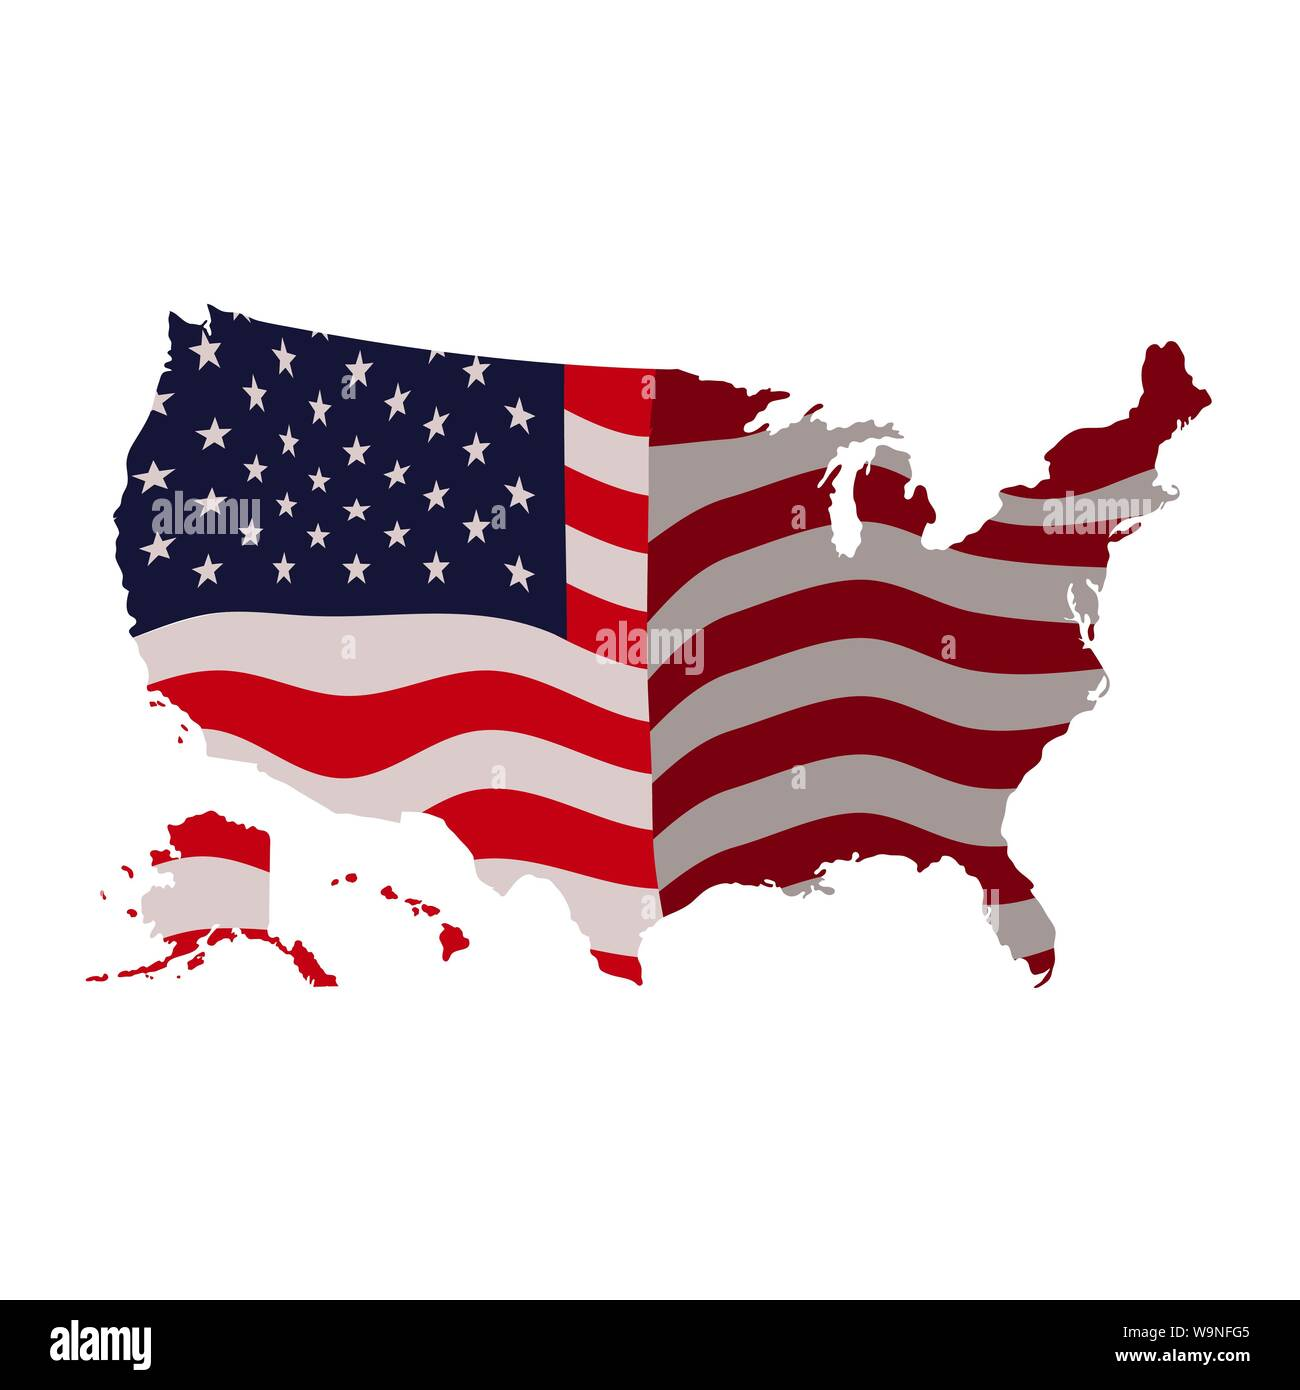 United States Map Stock Photos & United States Map Stock ...